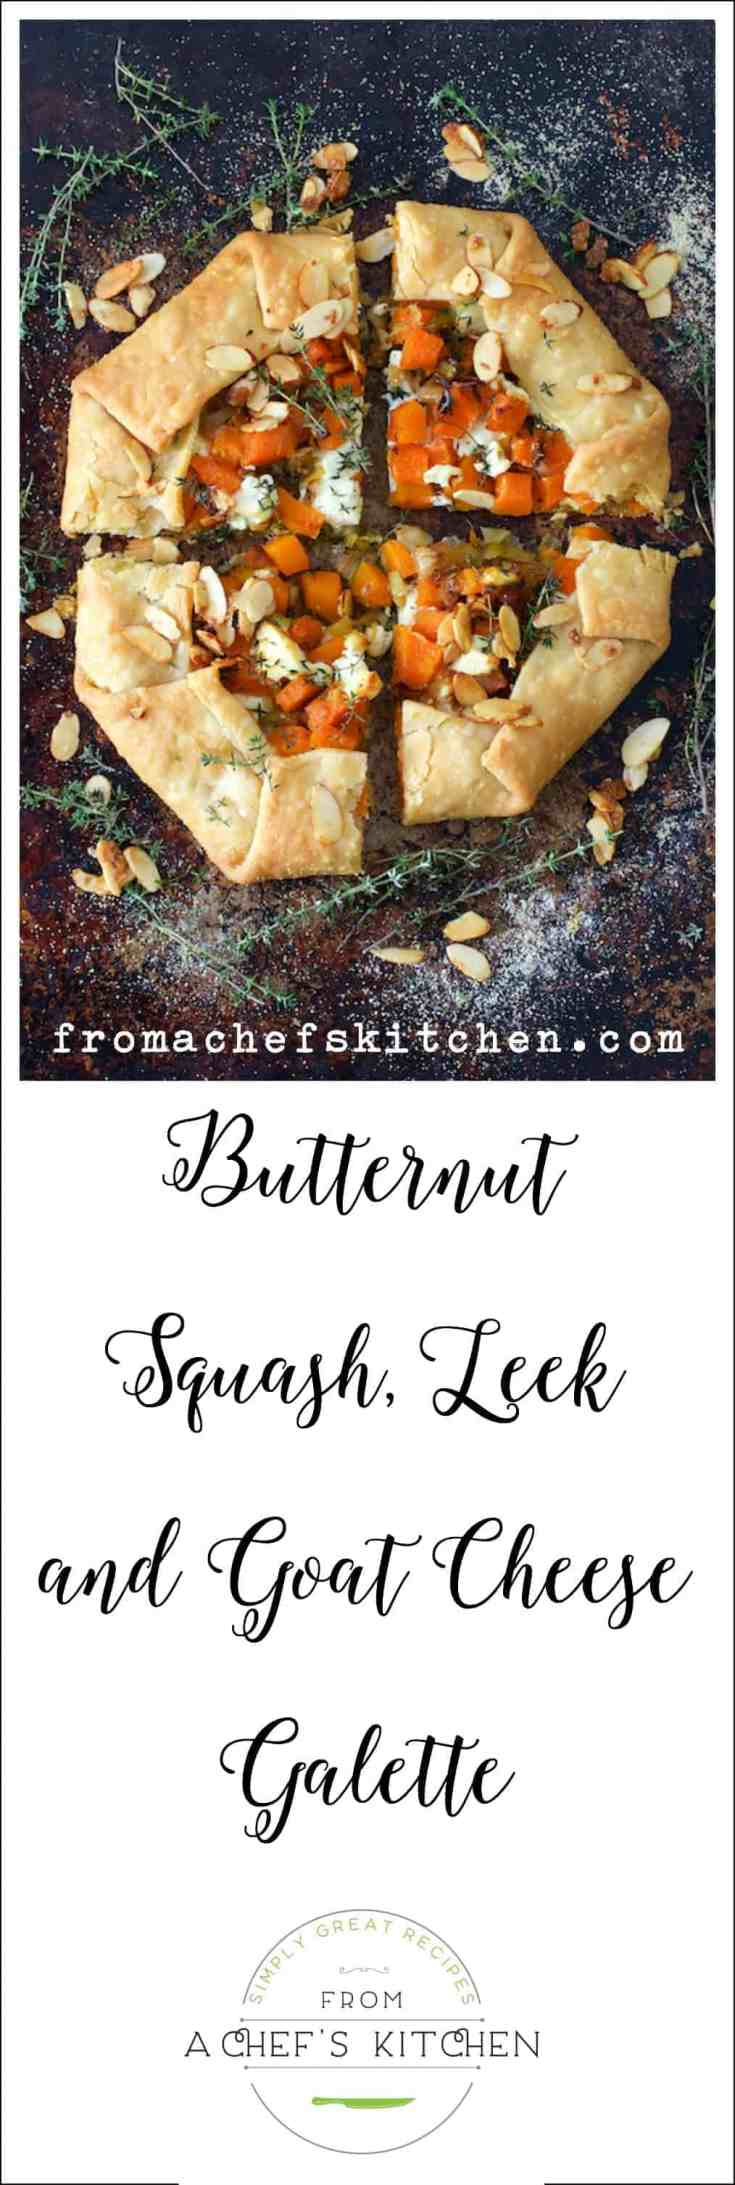 Butternut Squash, Leek and Goat Cheese Galette is simple, savory and elegant! It's a lovely start to a fall dinner or as part of a light supper with a soup or salad! #butternutsquash #galette #Frenchfood #tart #vegetarian